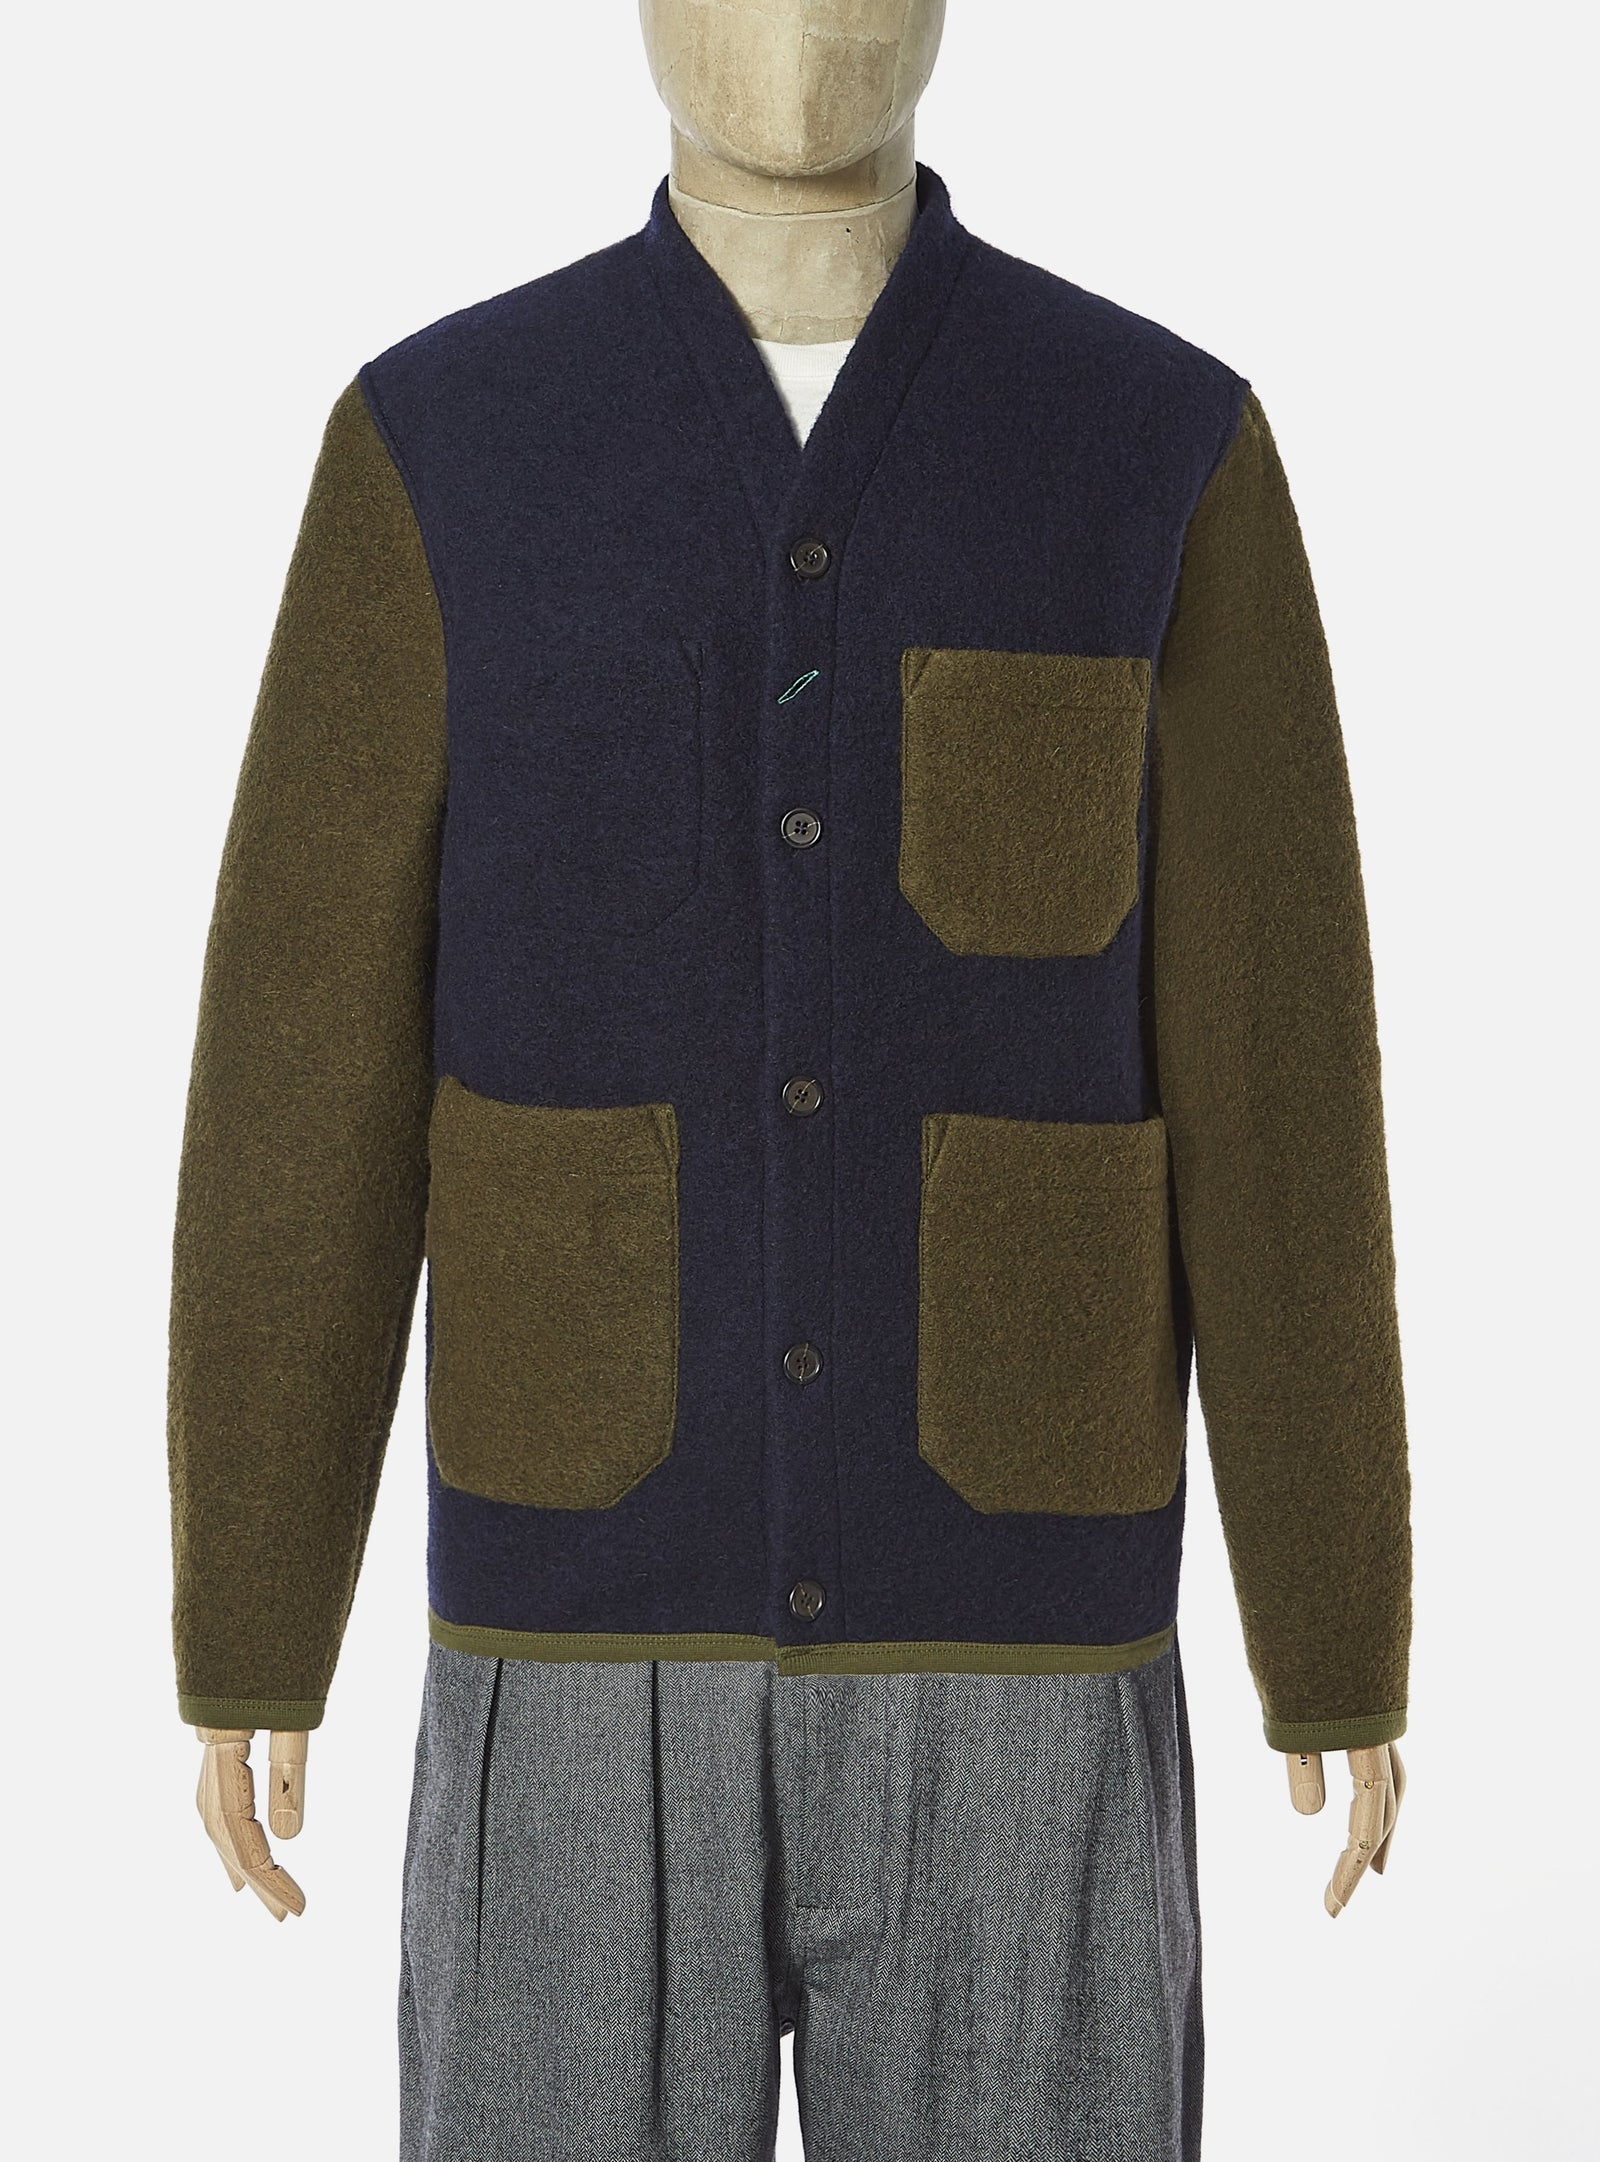 Universal Works for Esquire Two Colour Cardigan in Olive/Navy Wool Fleece